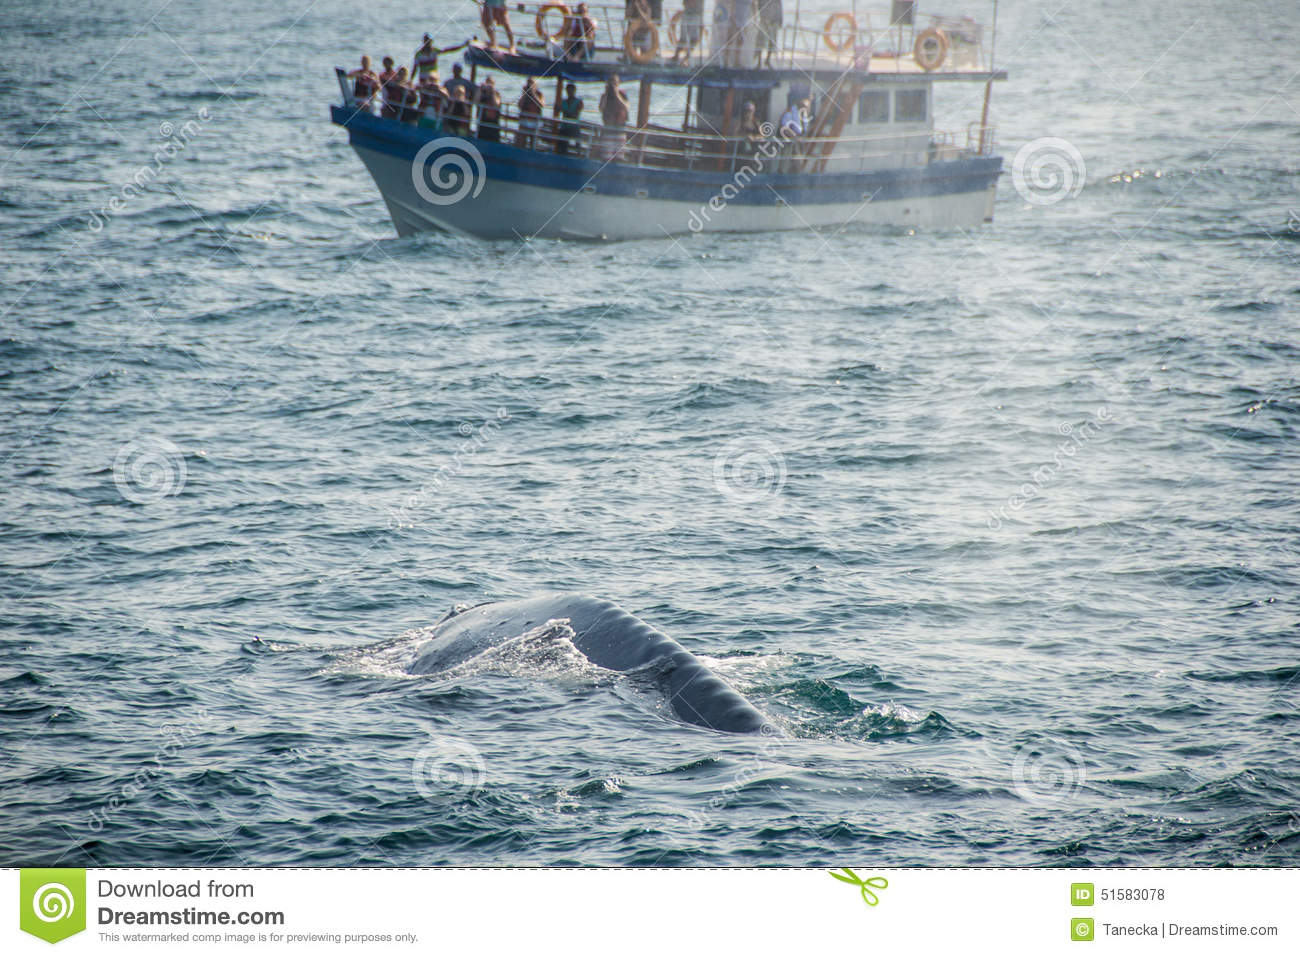 Blue Whale back